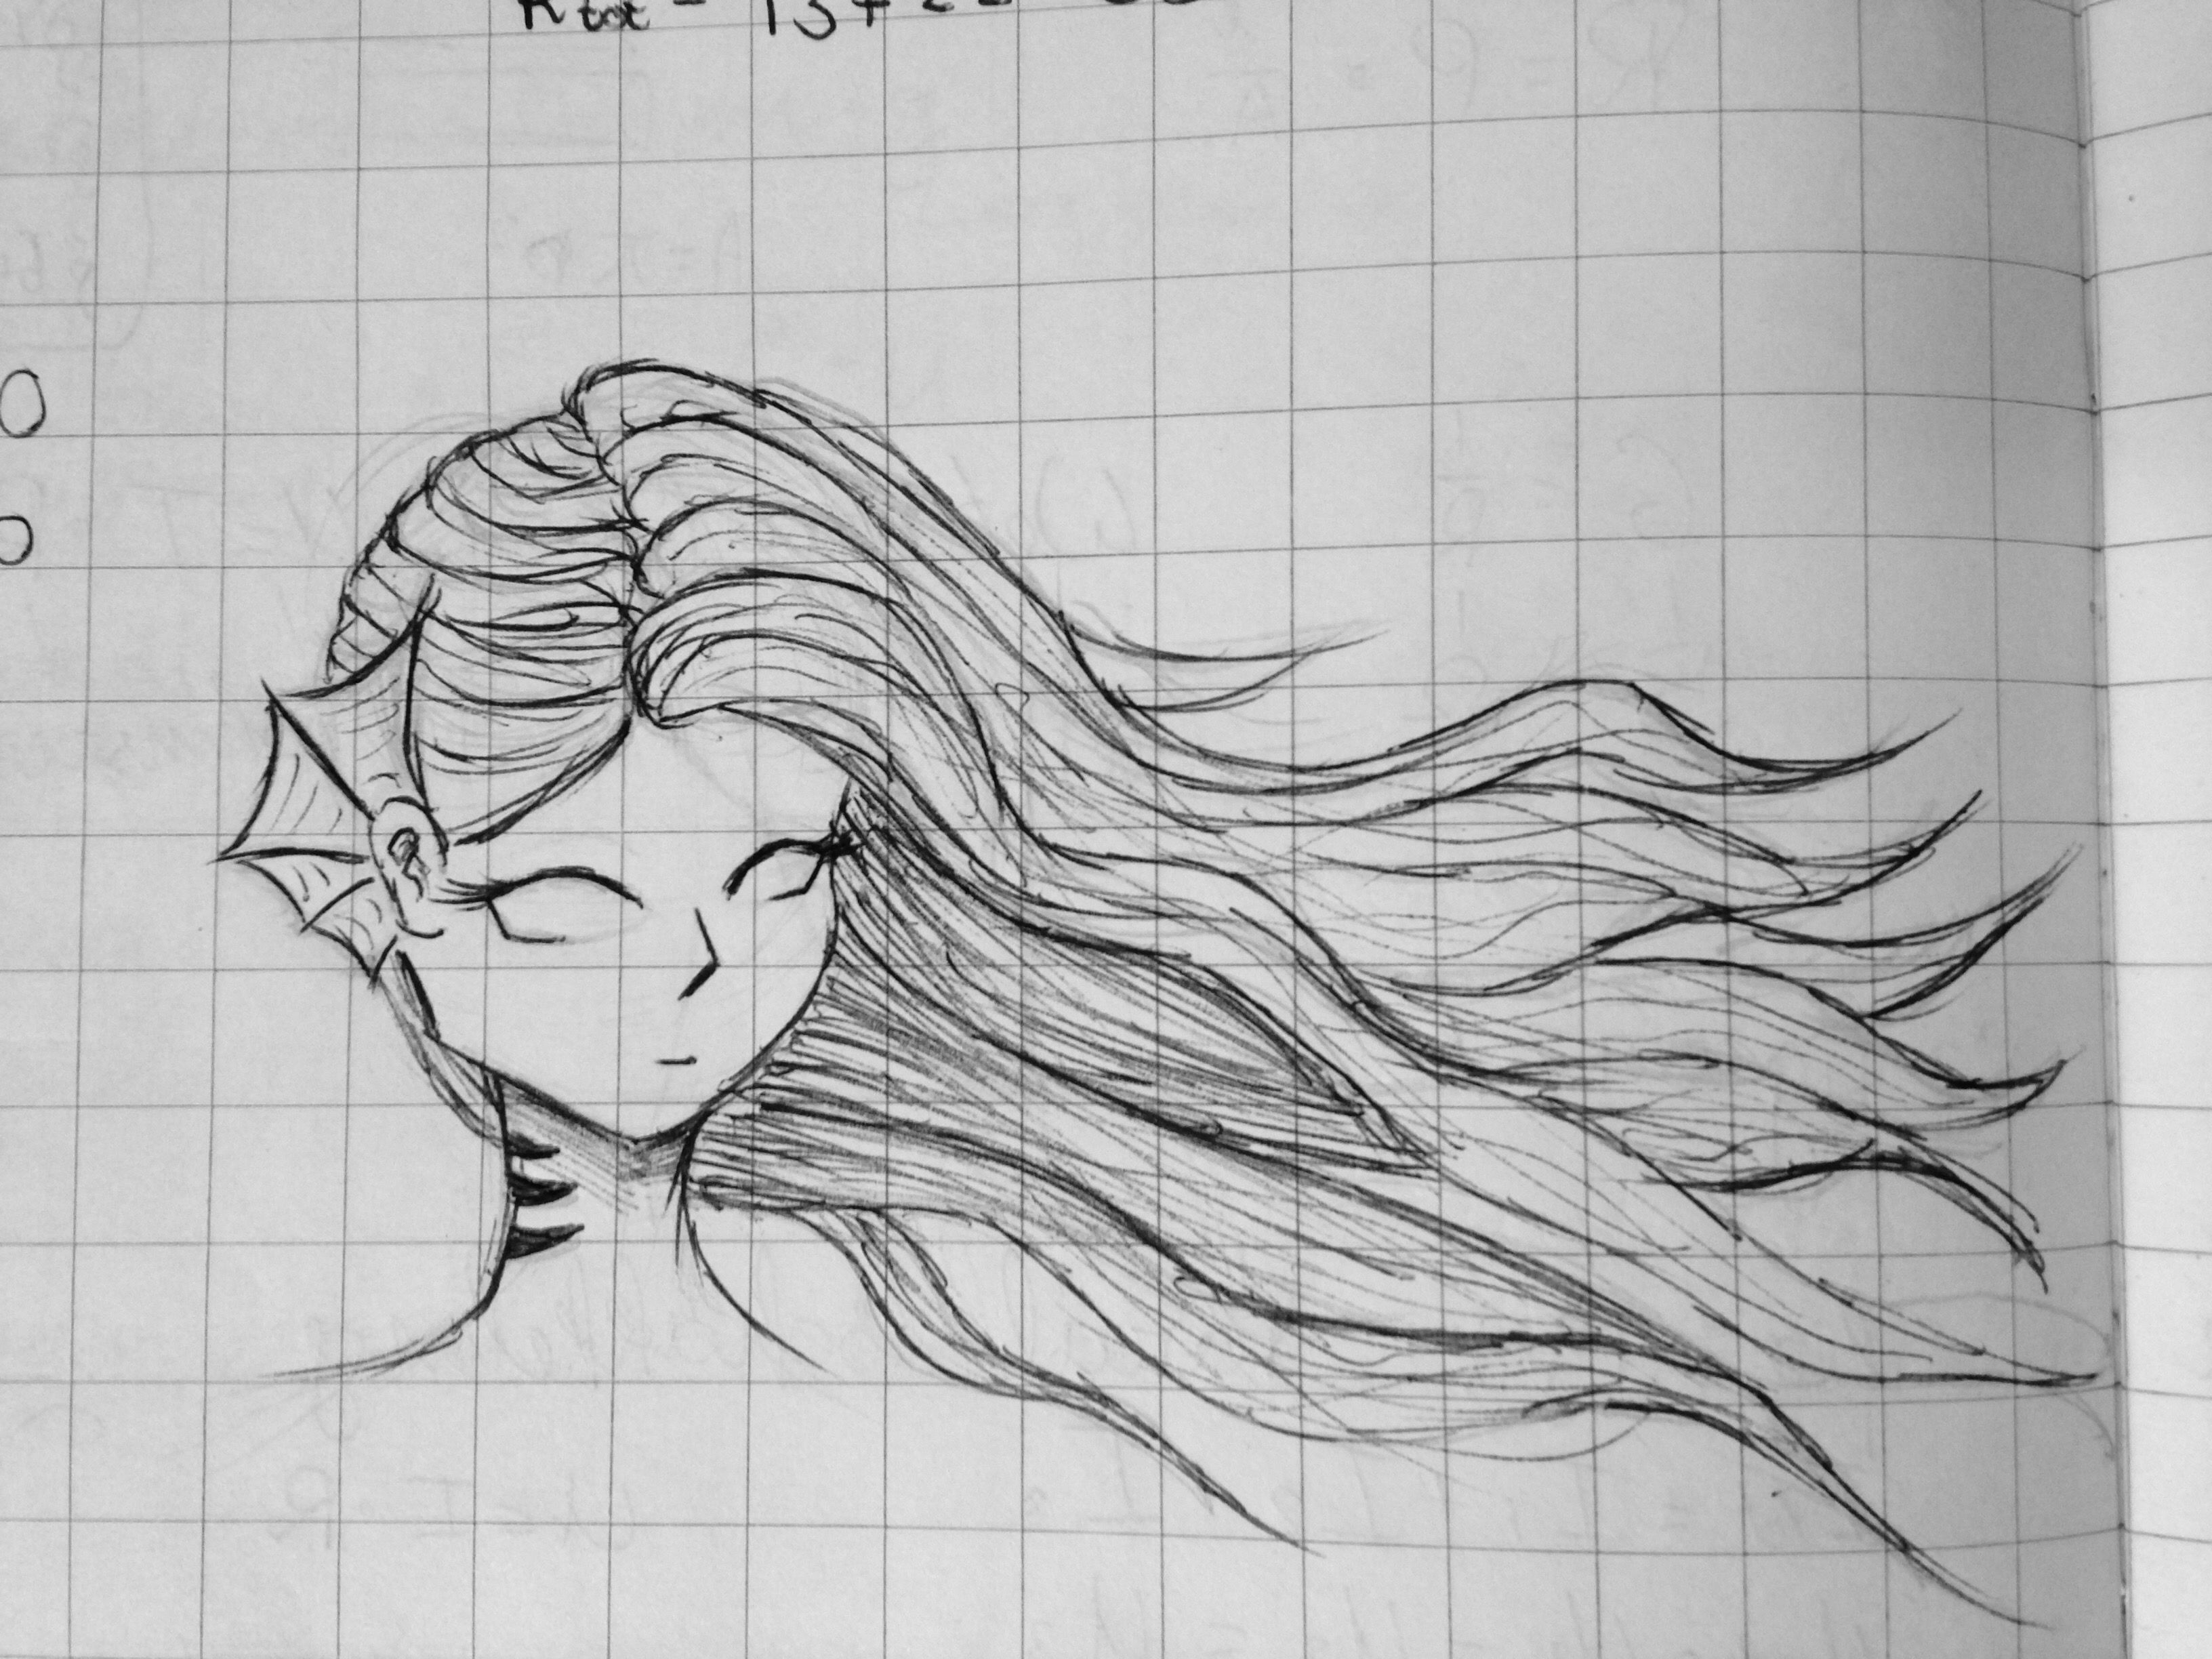 As You Can See She Has No Irises She Can Look In Your Soul She Has Fins For Ears And Long Wavy Hair Mermaid Oc School Dra My Drawings Drawings Drawing